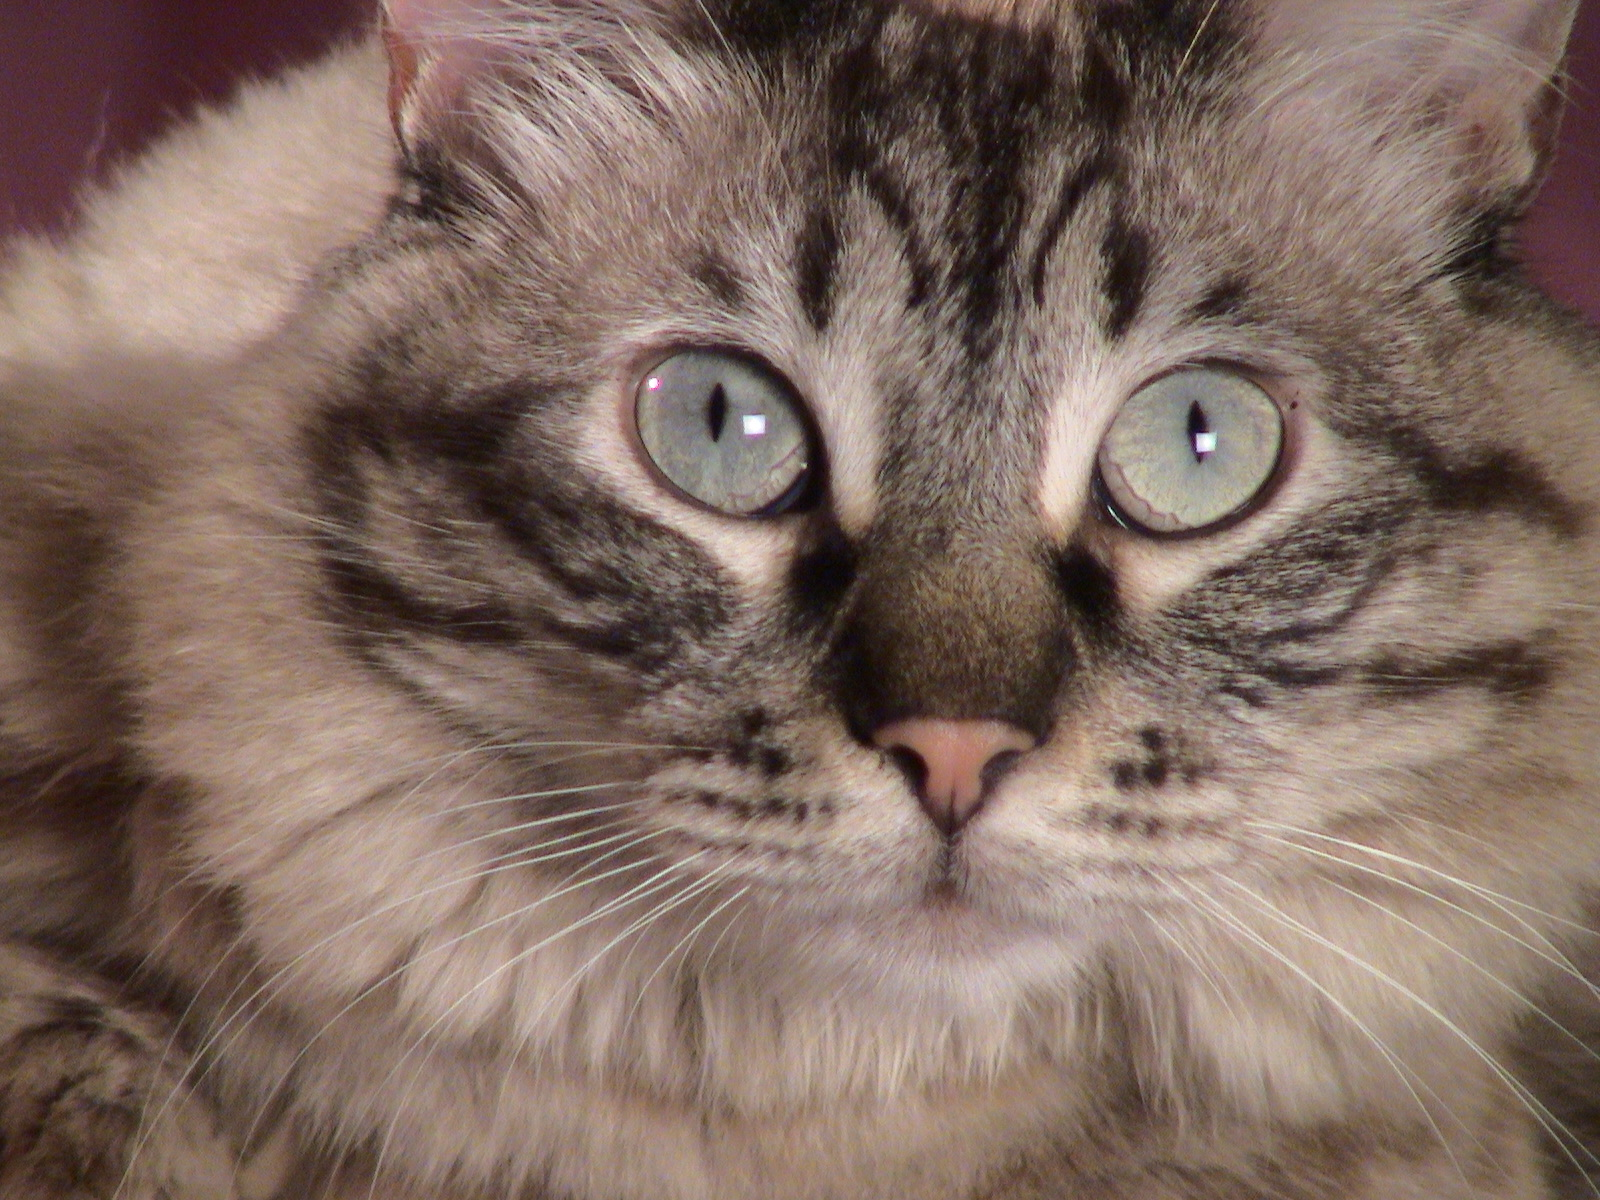 """Often times, a cat owner will ask, """"How would I know if my cat has a urinary tract infection?"""" The most common symptoms of cats with urinary tract inflammation and/or infection include straining to urinate often small amounts, frequent trips to the litter box, blood in the urination, vocalization at the litter box when urinating, etc."""